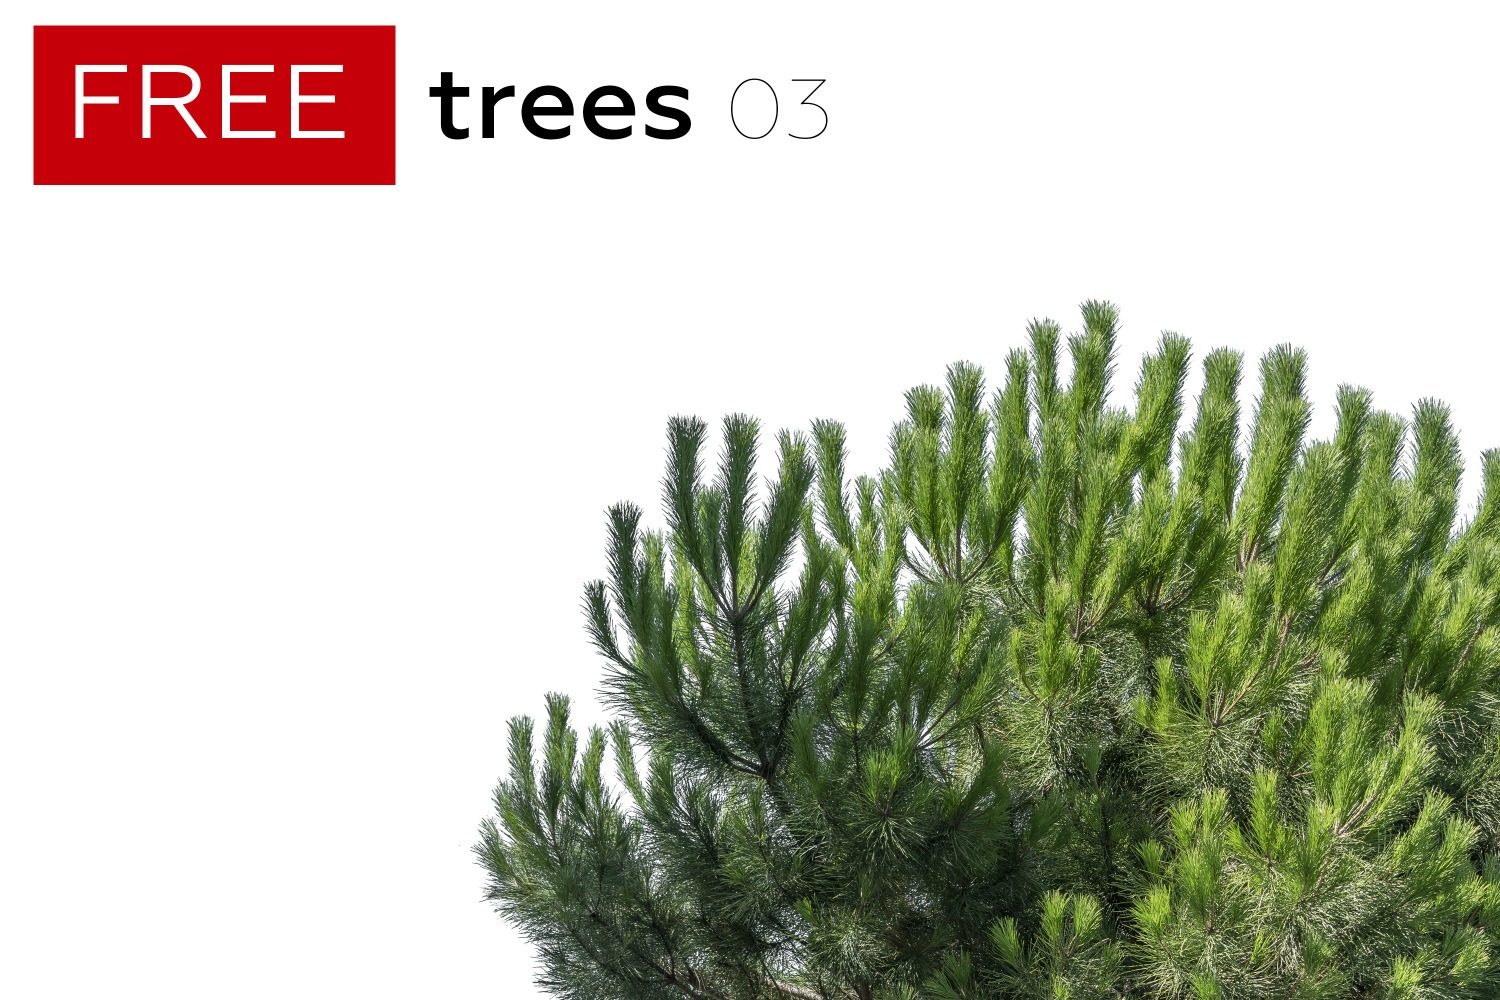 FREE STUFF - 4 Free Trees - Volume 3